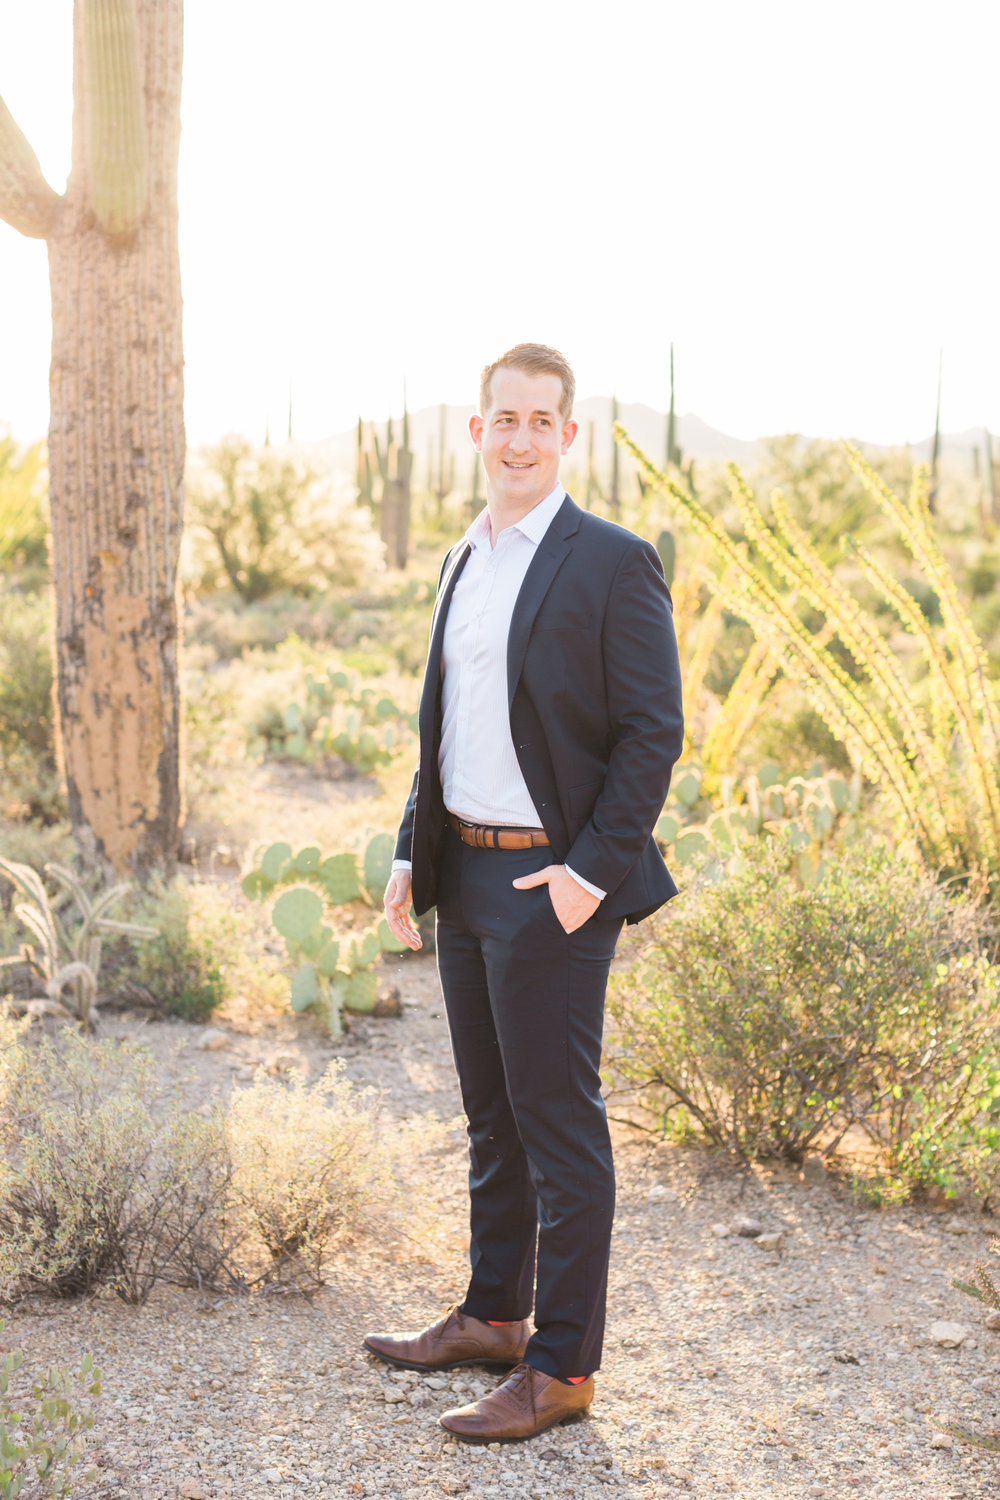 Handsome guy in suit with cactus in the background